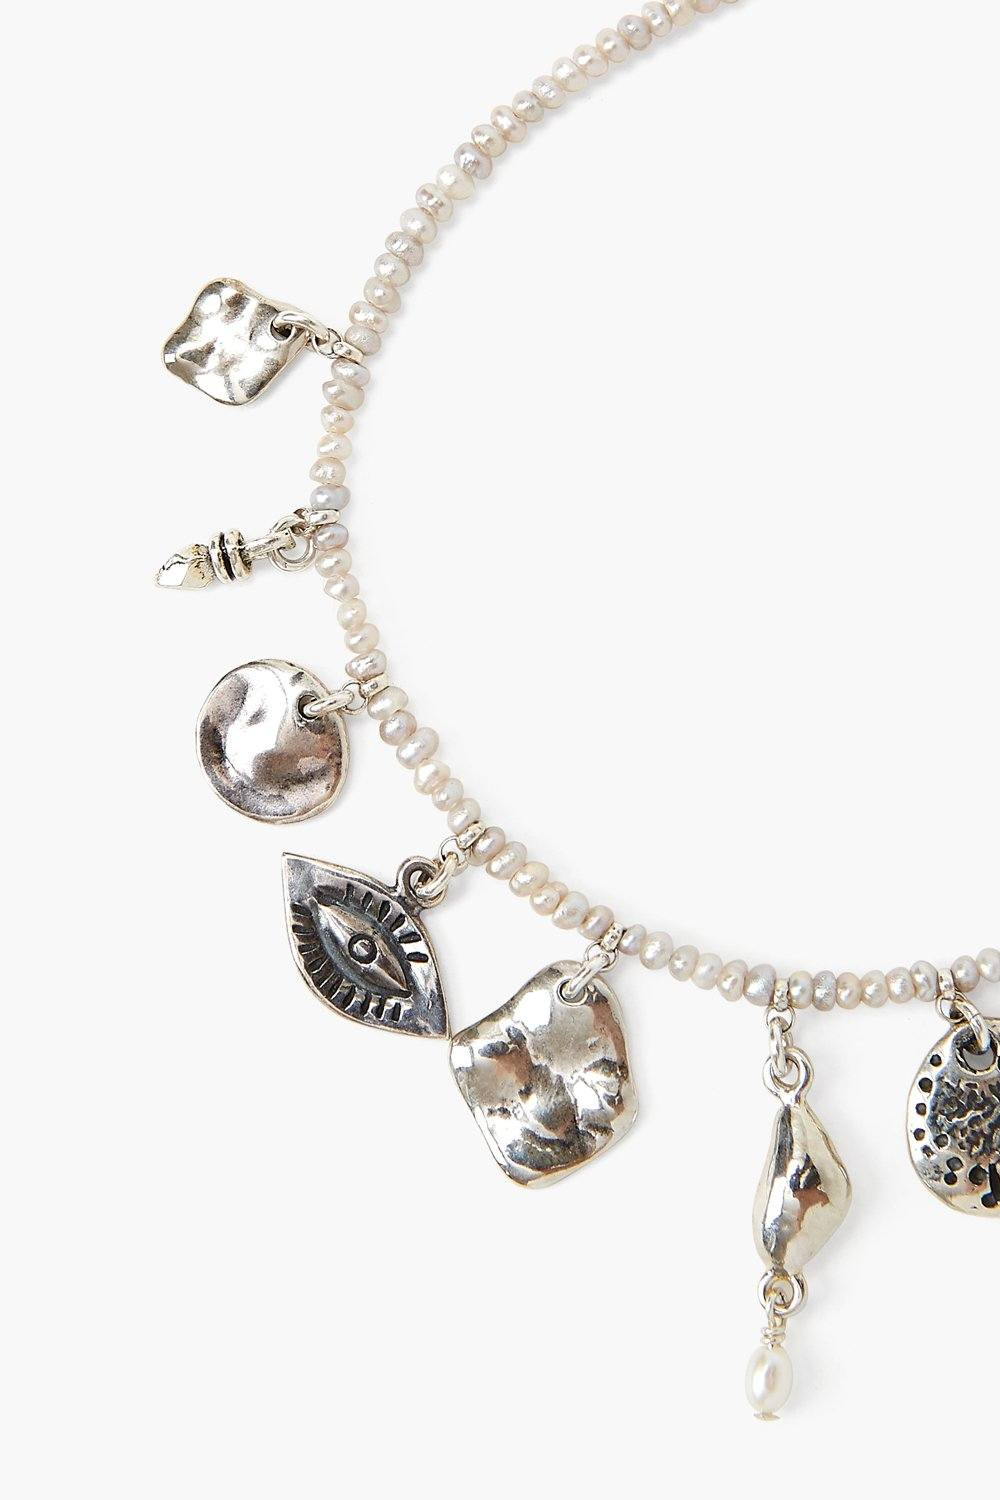 Grey Pearl and Silver Charm Bracelet